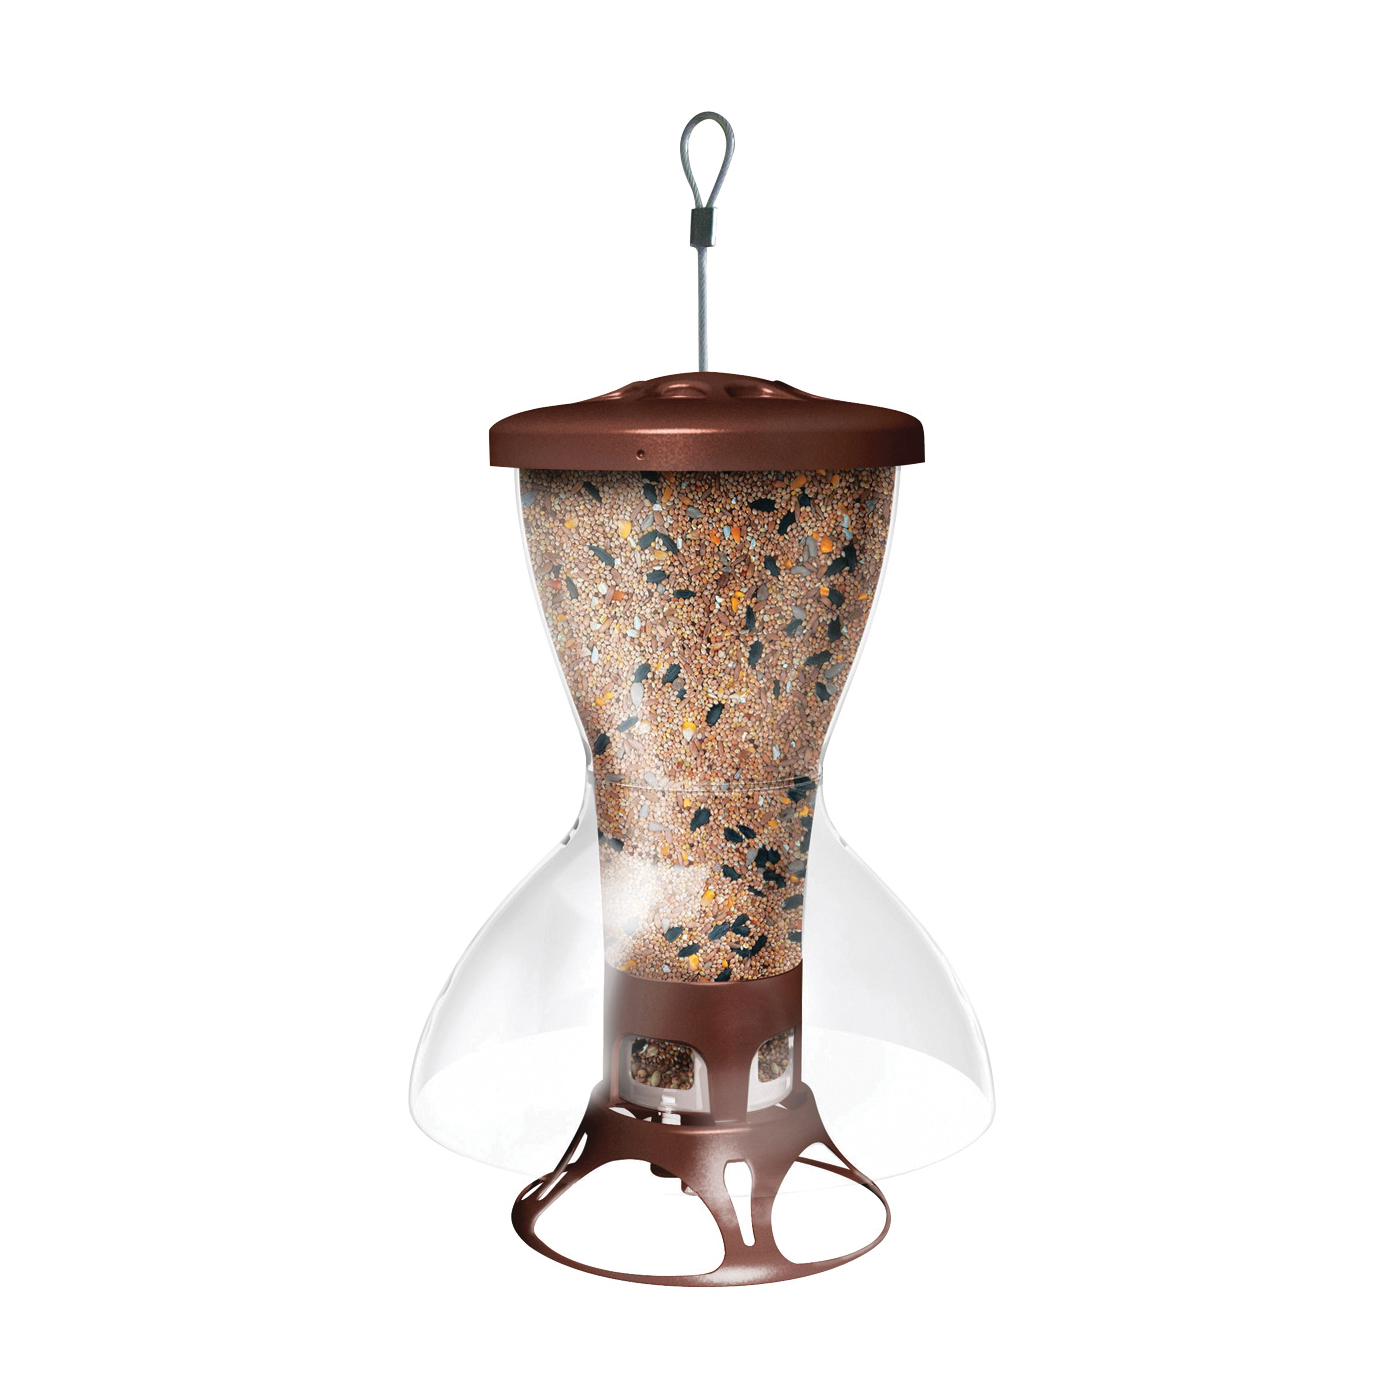 Picture of Perky-Pet 5109-2 Wild Bird Feeder, 12-1/2 in H, 3.5 lb, Metal/Plastic, Clear, Hanging Mounting